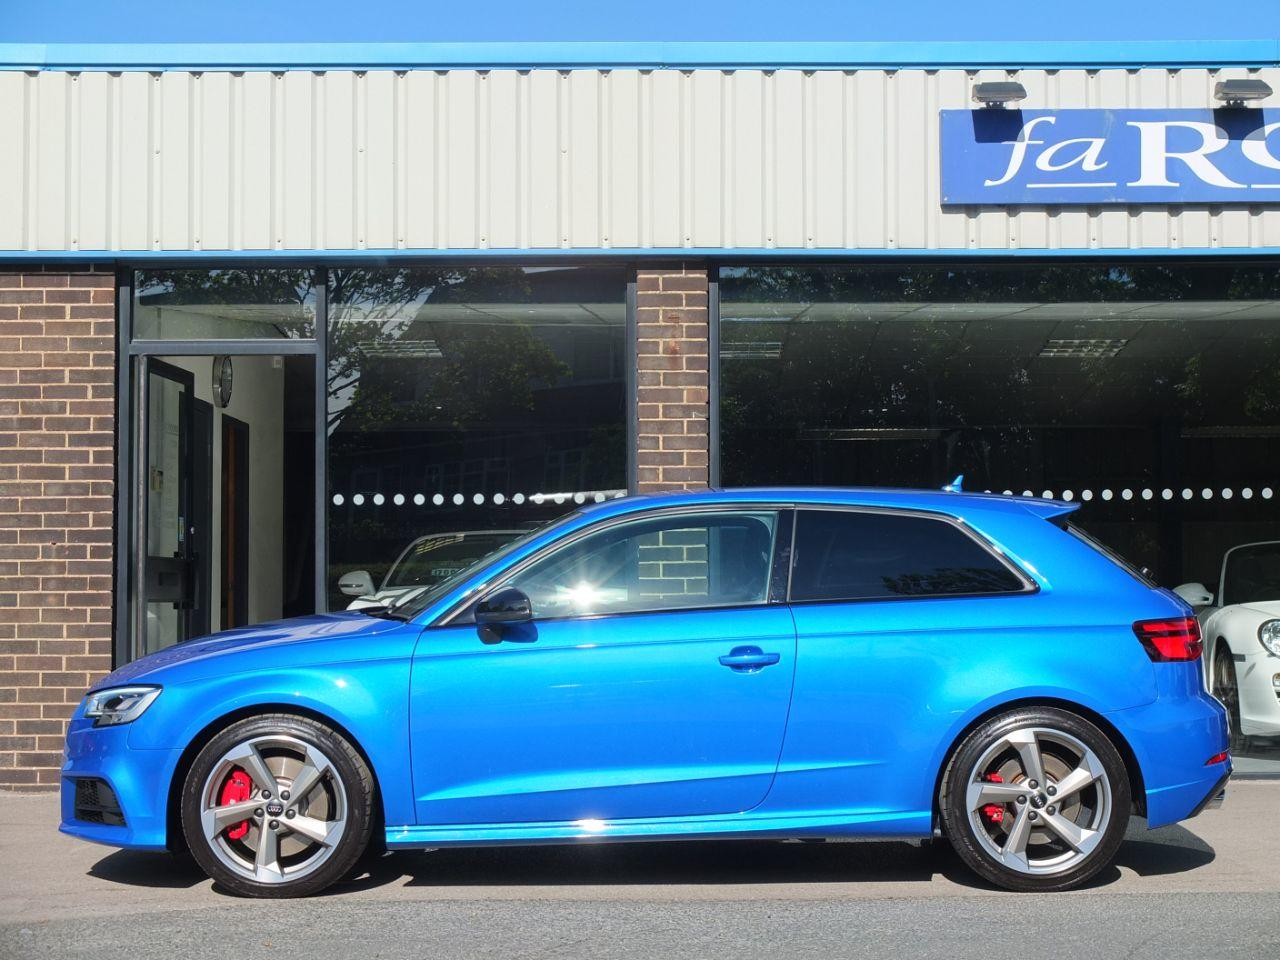 Audi A3 2.0 S3 TFSI quattro Black Edition 3 door S tronic 310ps Hatchback Petrol Ara Blue Crystal Effect